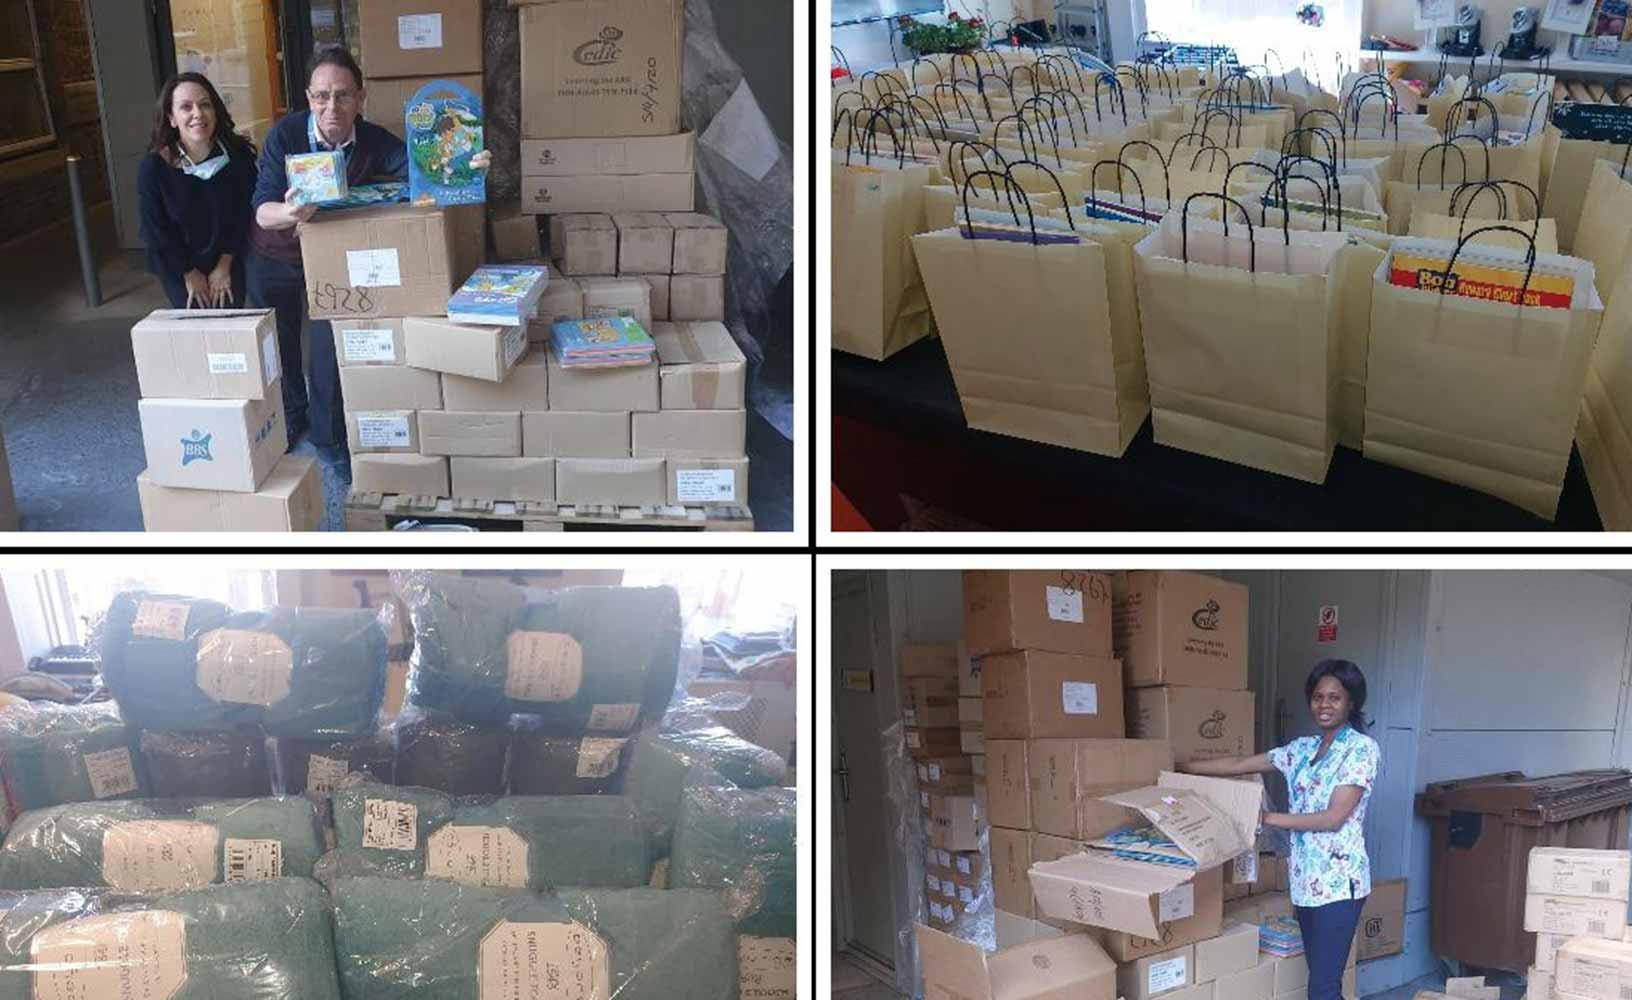 Collage of four images. 1. A woman and a man leaning over and against boxes filled with childrens books. The man is holding one of the books up. 2. A close up of many paper bags on a table in an office filled with various books and goodies. 3. A close up of light blue blankets wrapped in clear plastic on a table. 4. A nurse facing forward about to pick up a box from a storehouse.